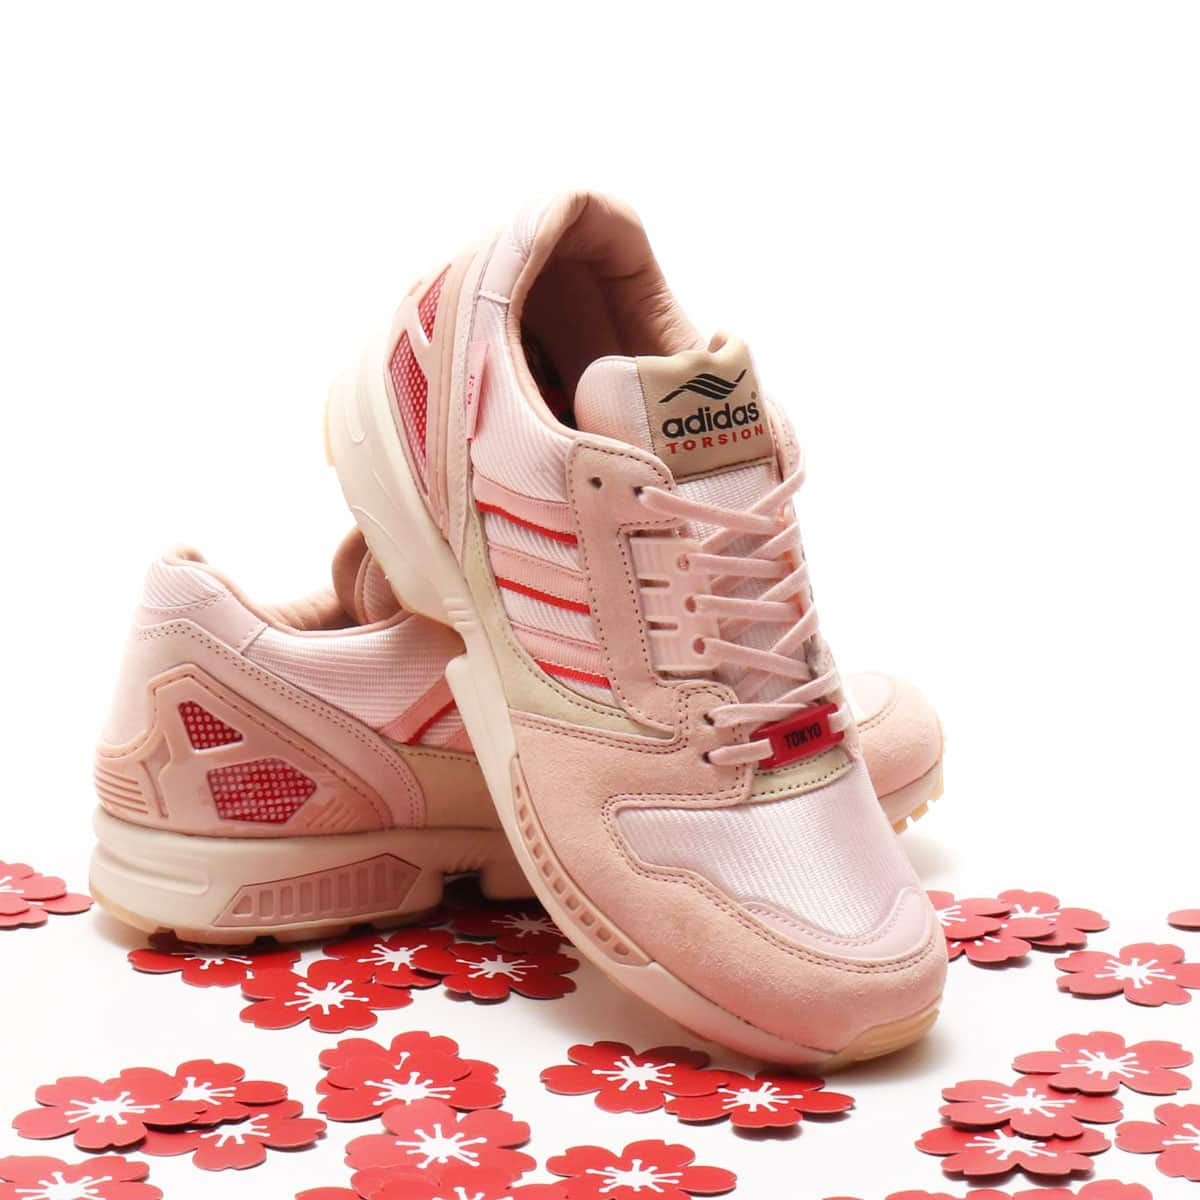 adidas ZX 8000 ICY PINK/GLORY RED/VAPOR PINK 20SS-S_photo_large